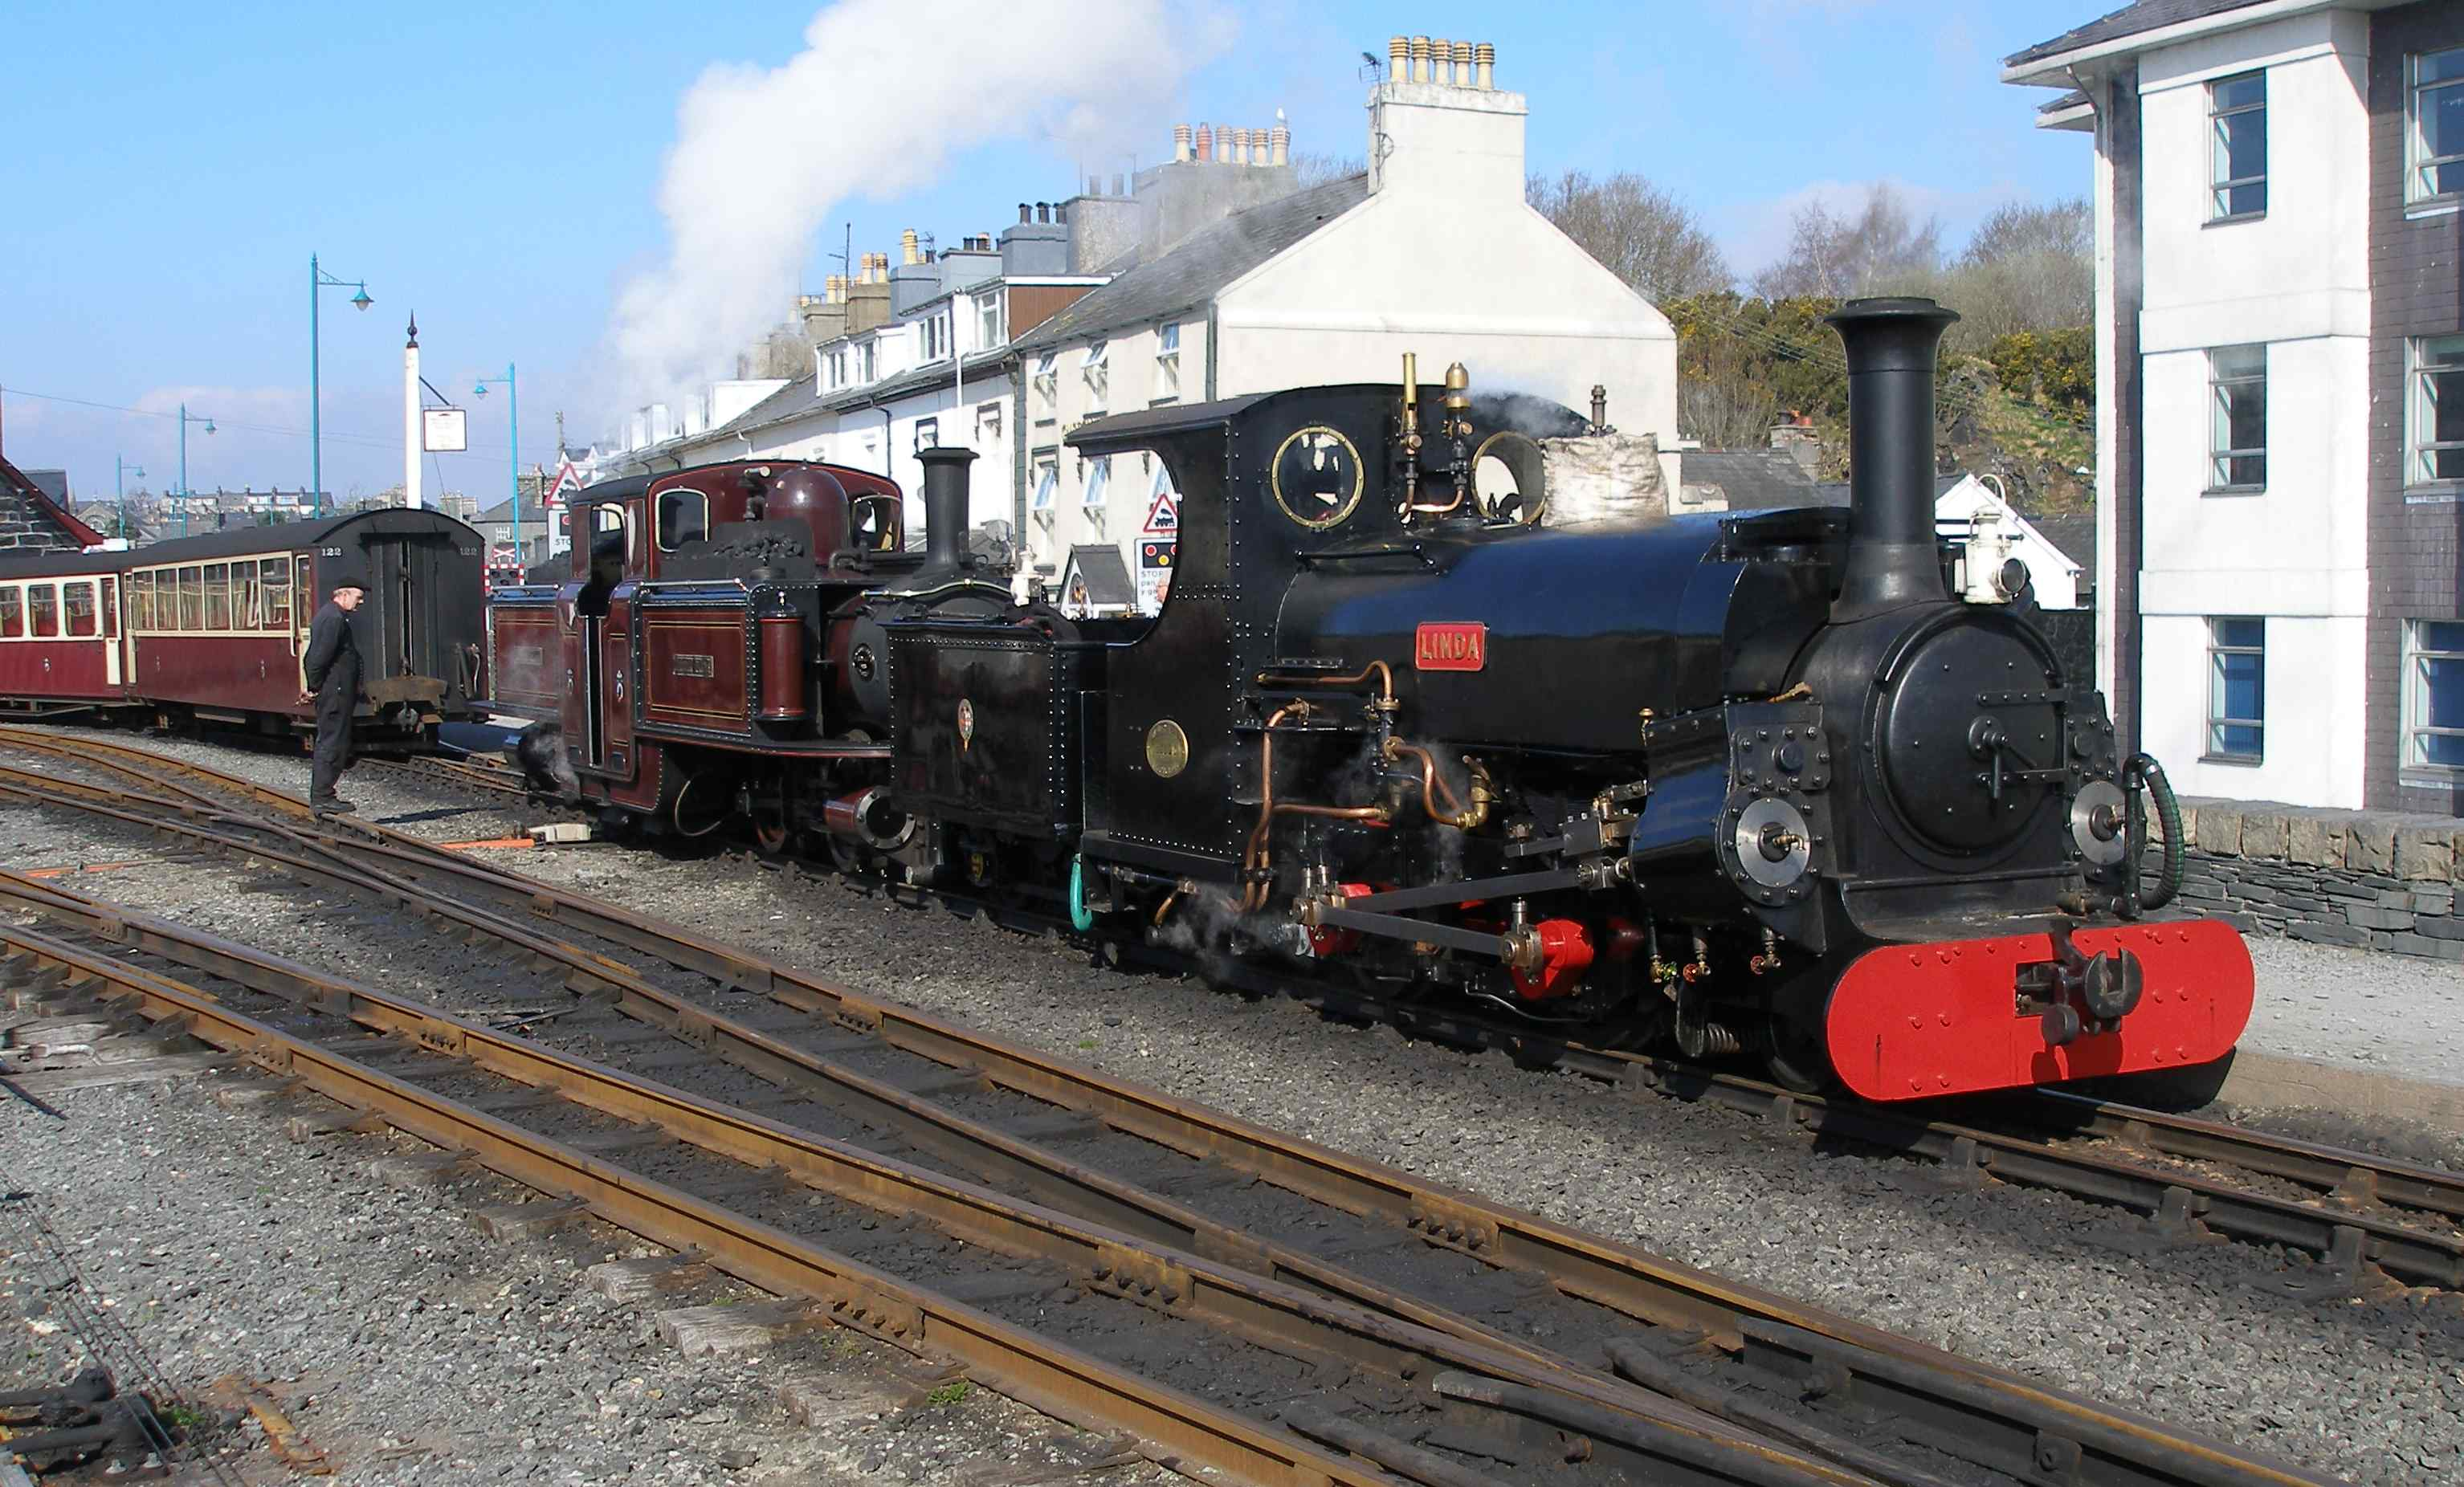 'Linda' and 'Merddin Emrys' make a fine sight as they back down on to their train at Porthmadog Harbour Station. This area here is now being redeveloped to create a new platform for Welsh Highland Railway trains to be terminated. This has involved widening the embankment and relocating the wave wall constructed in 1940. The new signal box and relay room are now located behind and to the left of the photographer. The new scheme will feature lower quadrant semaphore signals and the restoration of a 'trident' - the original was brought down from Blaenau in 1923 but was finally blown down in the late 1960s.